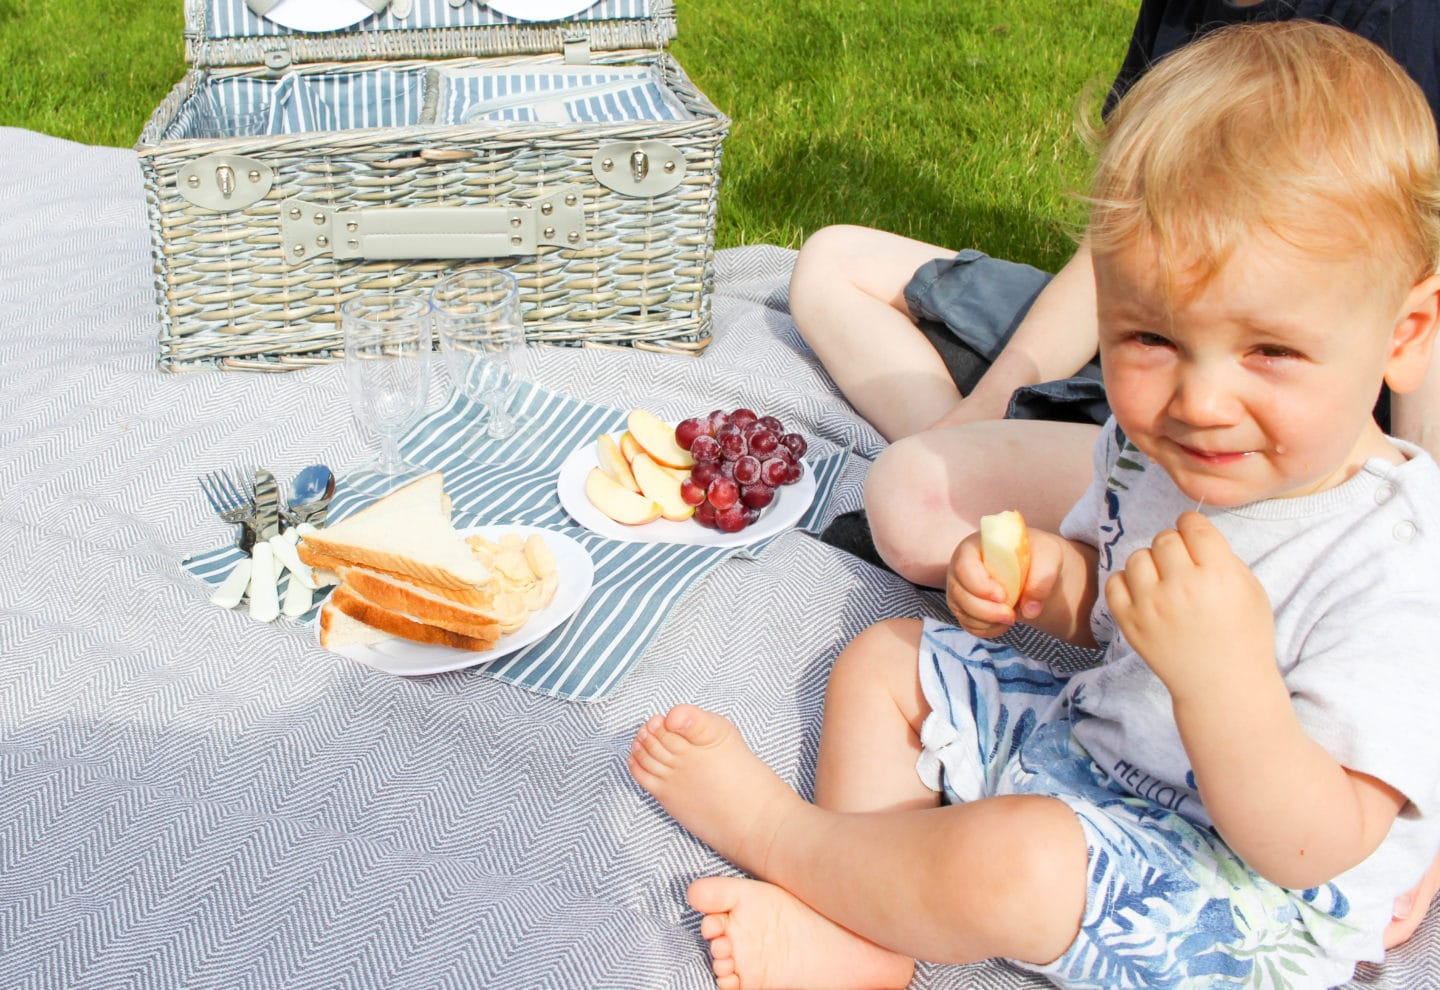 Why A Family Picnic Is A Winning Idea (AD)